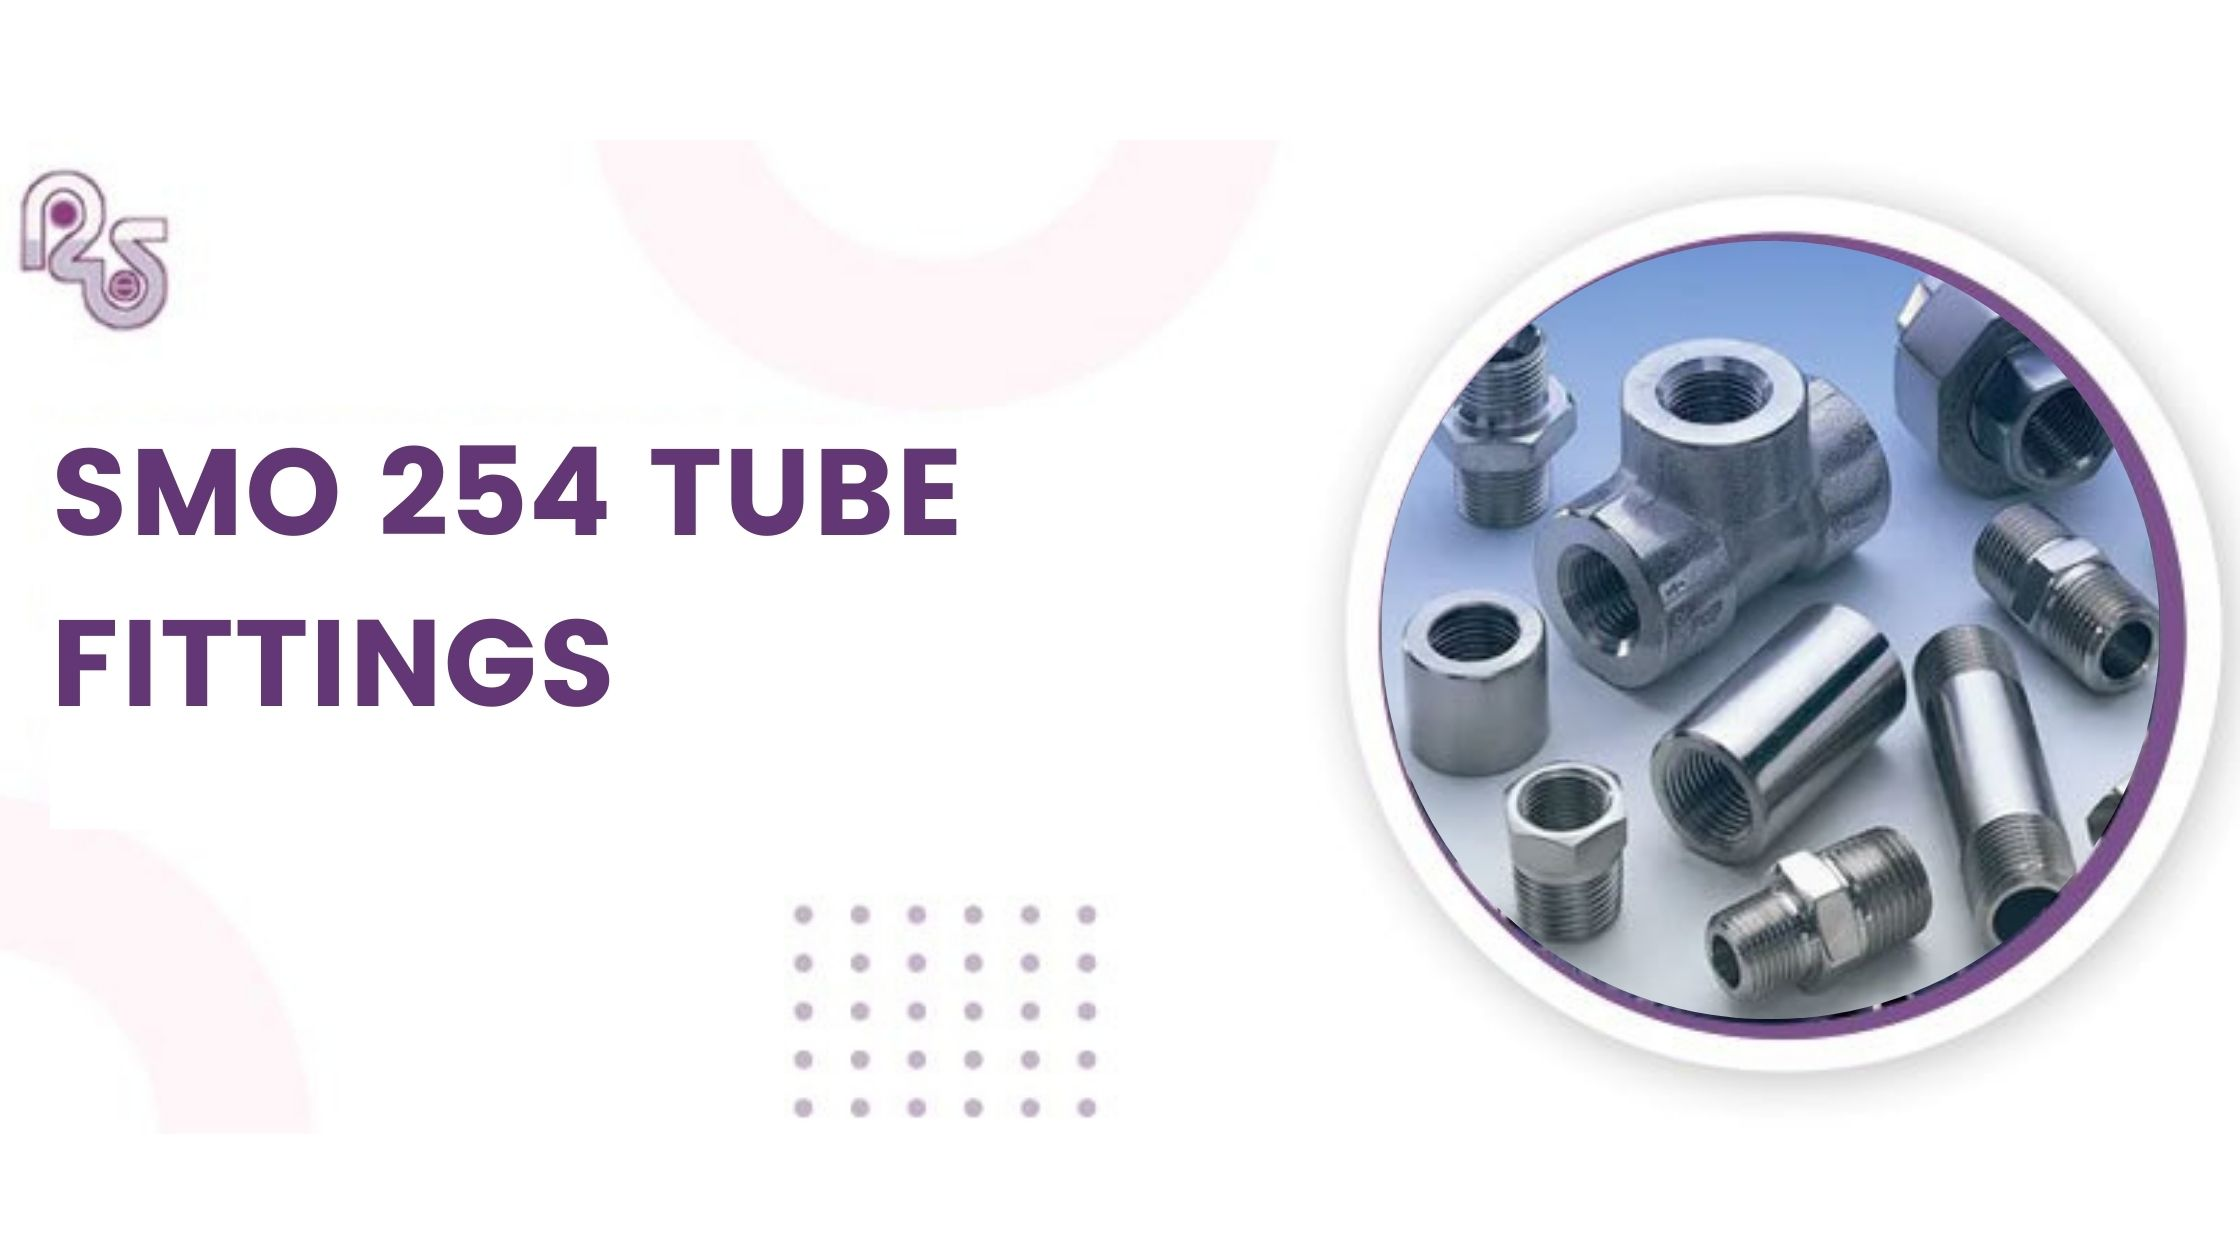 What you need to know about SMO 254 TUBE FITTINGS